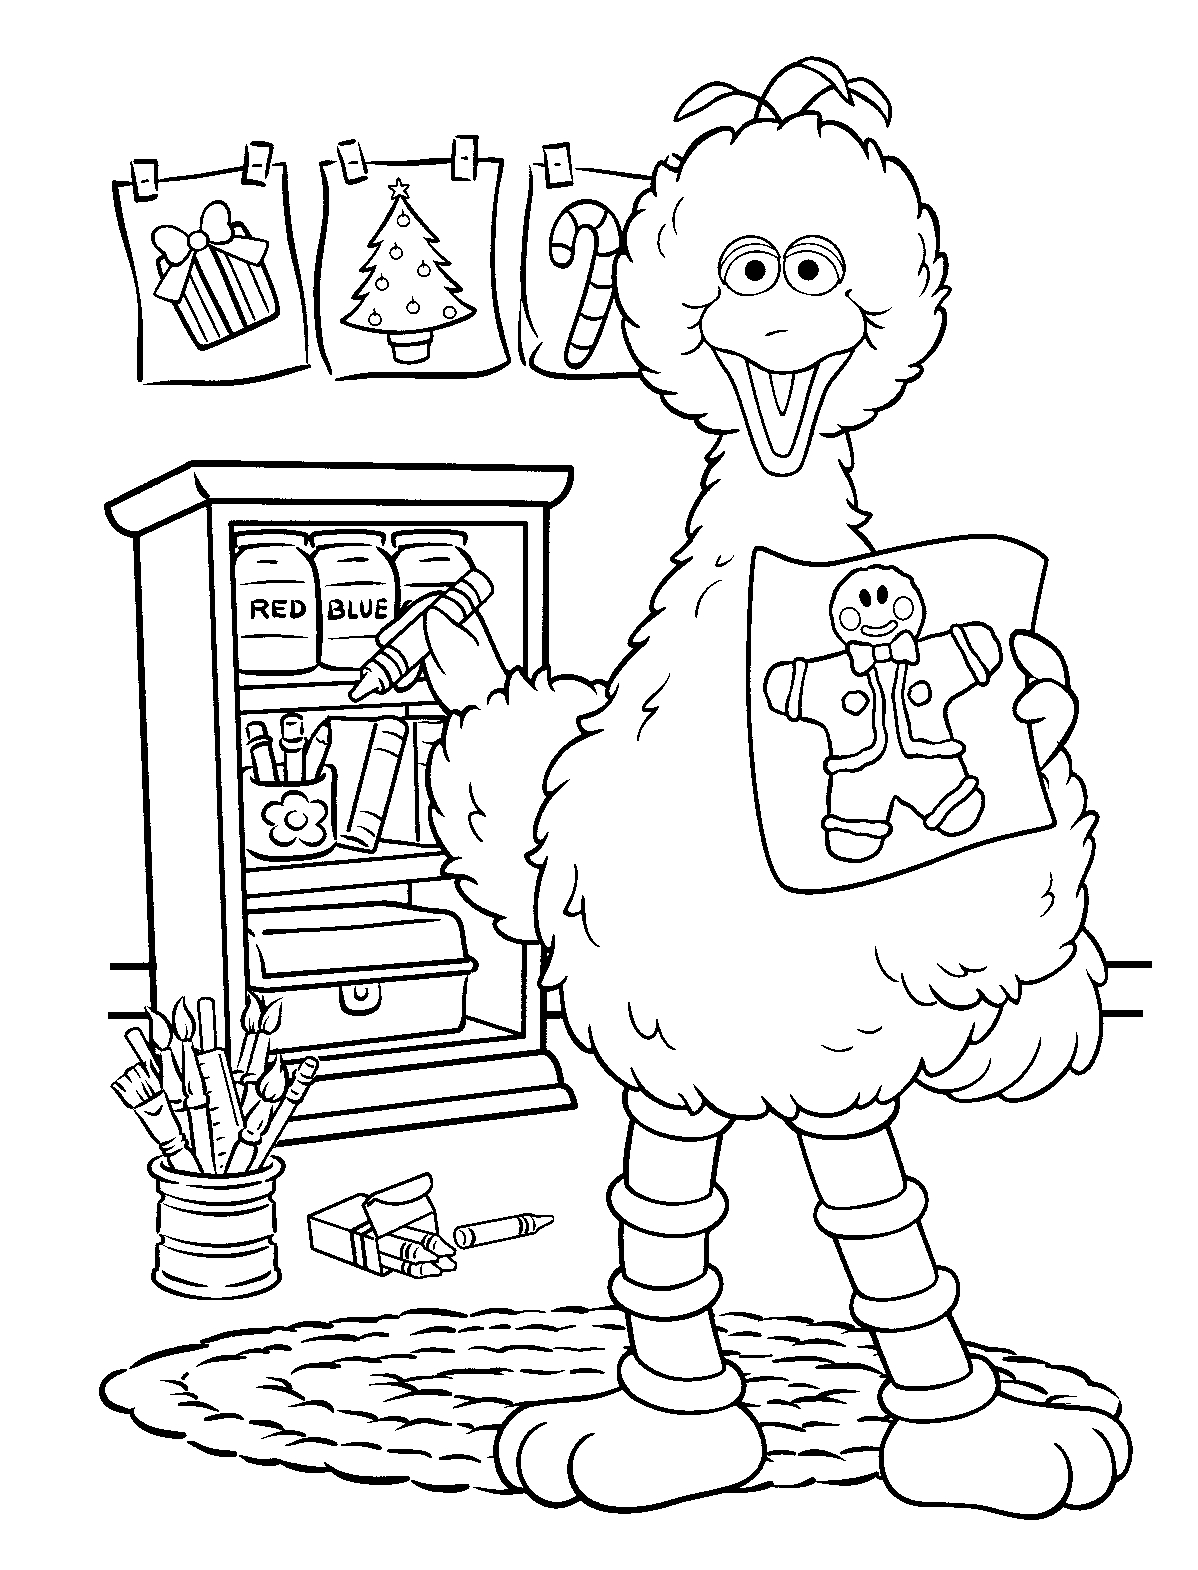 sesame street birthday coloring book ; popular-sesame-street-coloring-books-pages-for-kids